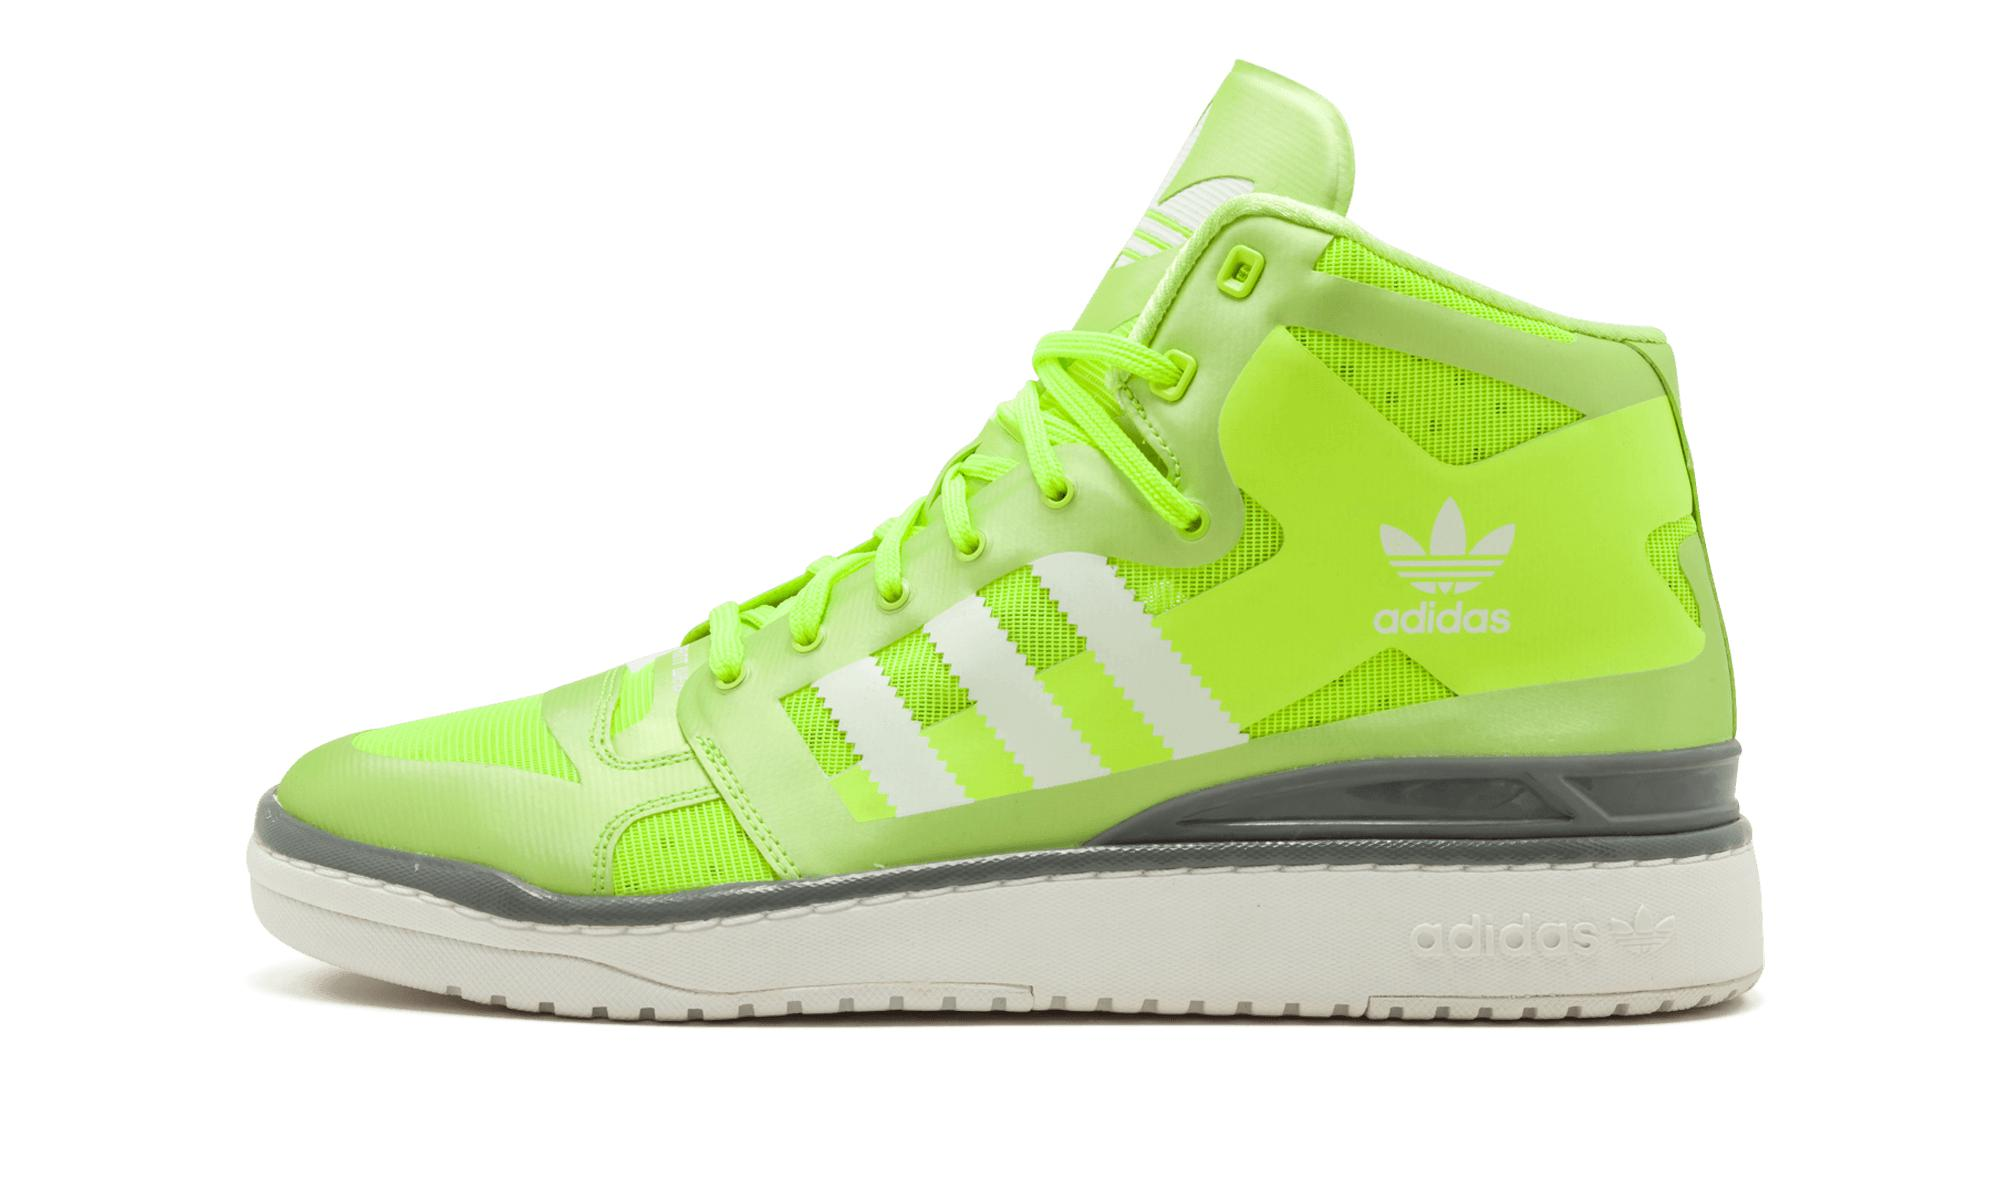 new style 0f9ee 3c4b9 ... Adidas - Green Forum Mid Crazylight for Men - Lyst.